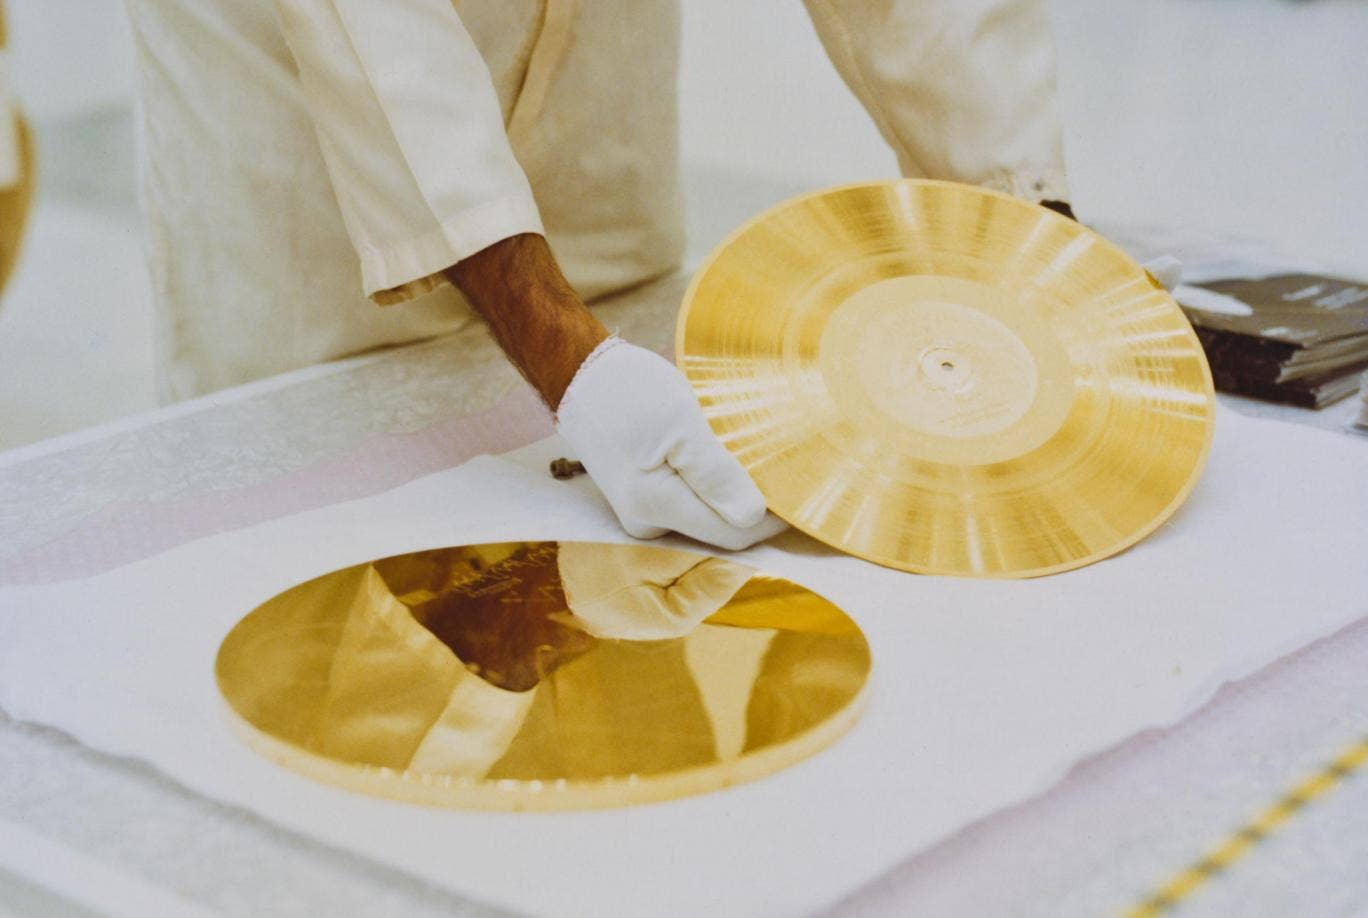 These are the images on the Voyager Golden Record that ...